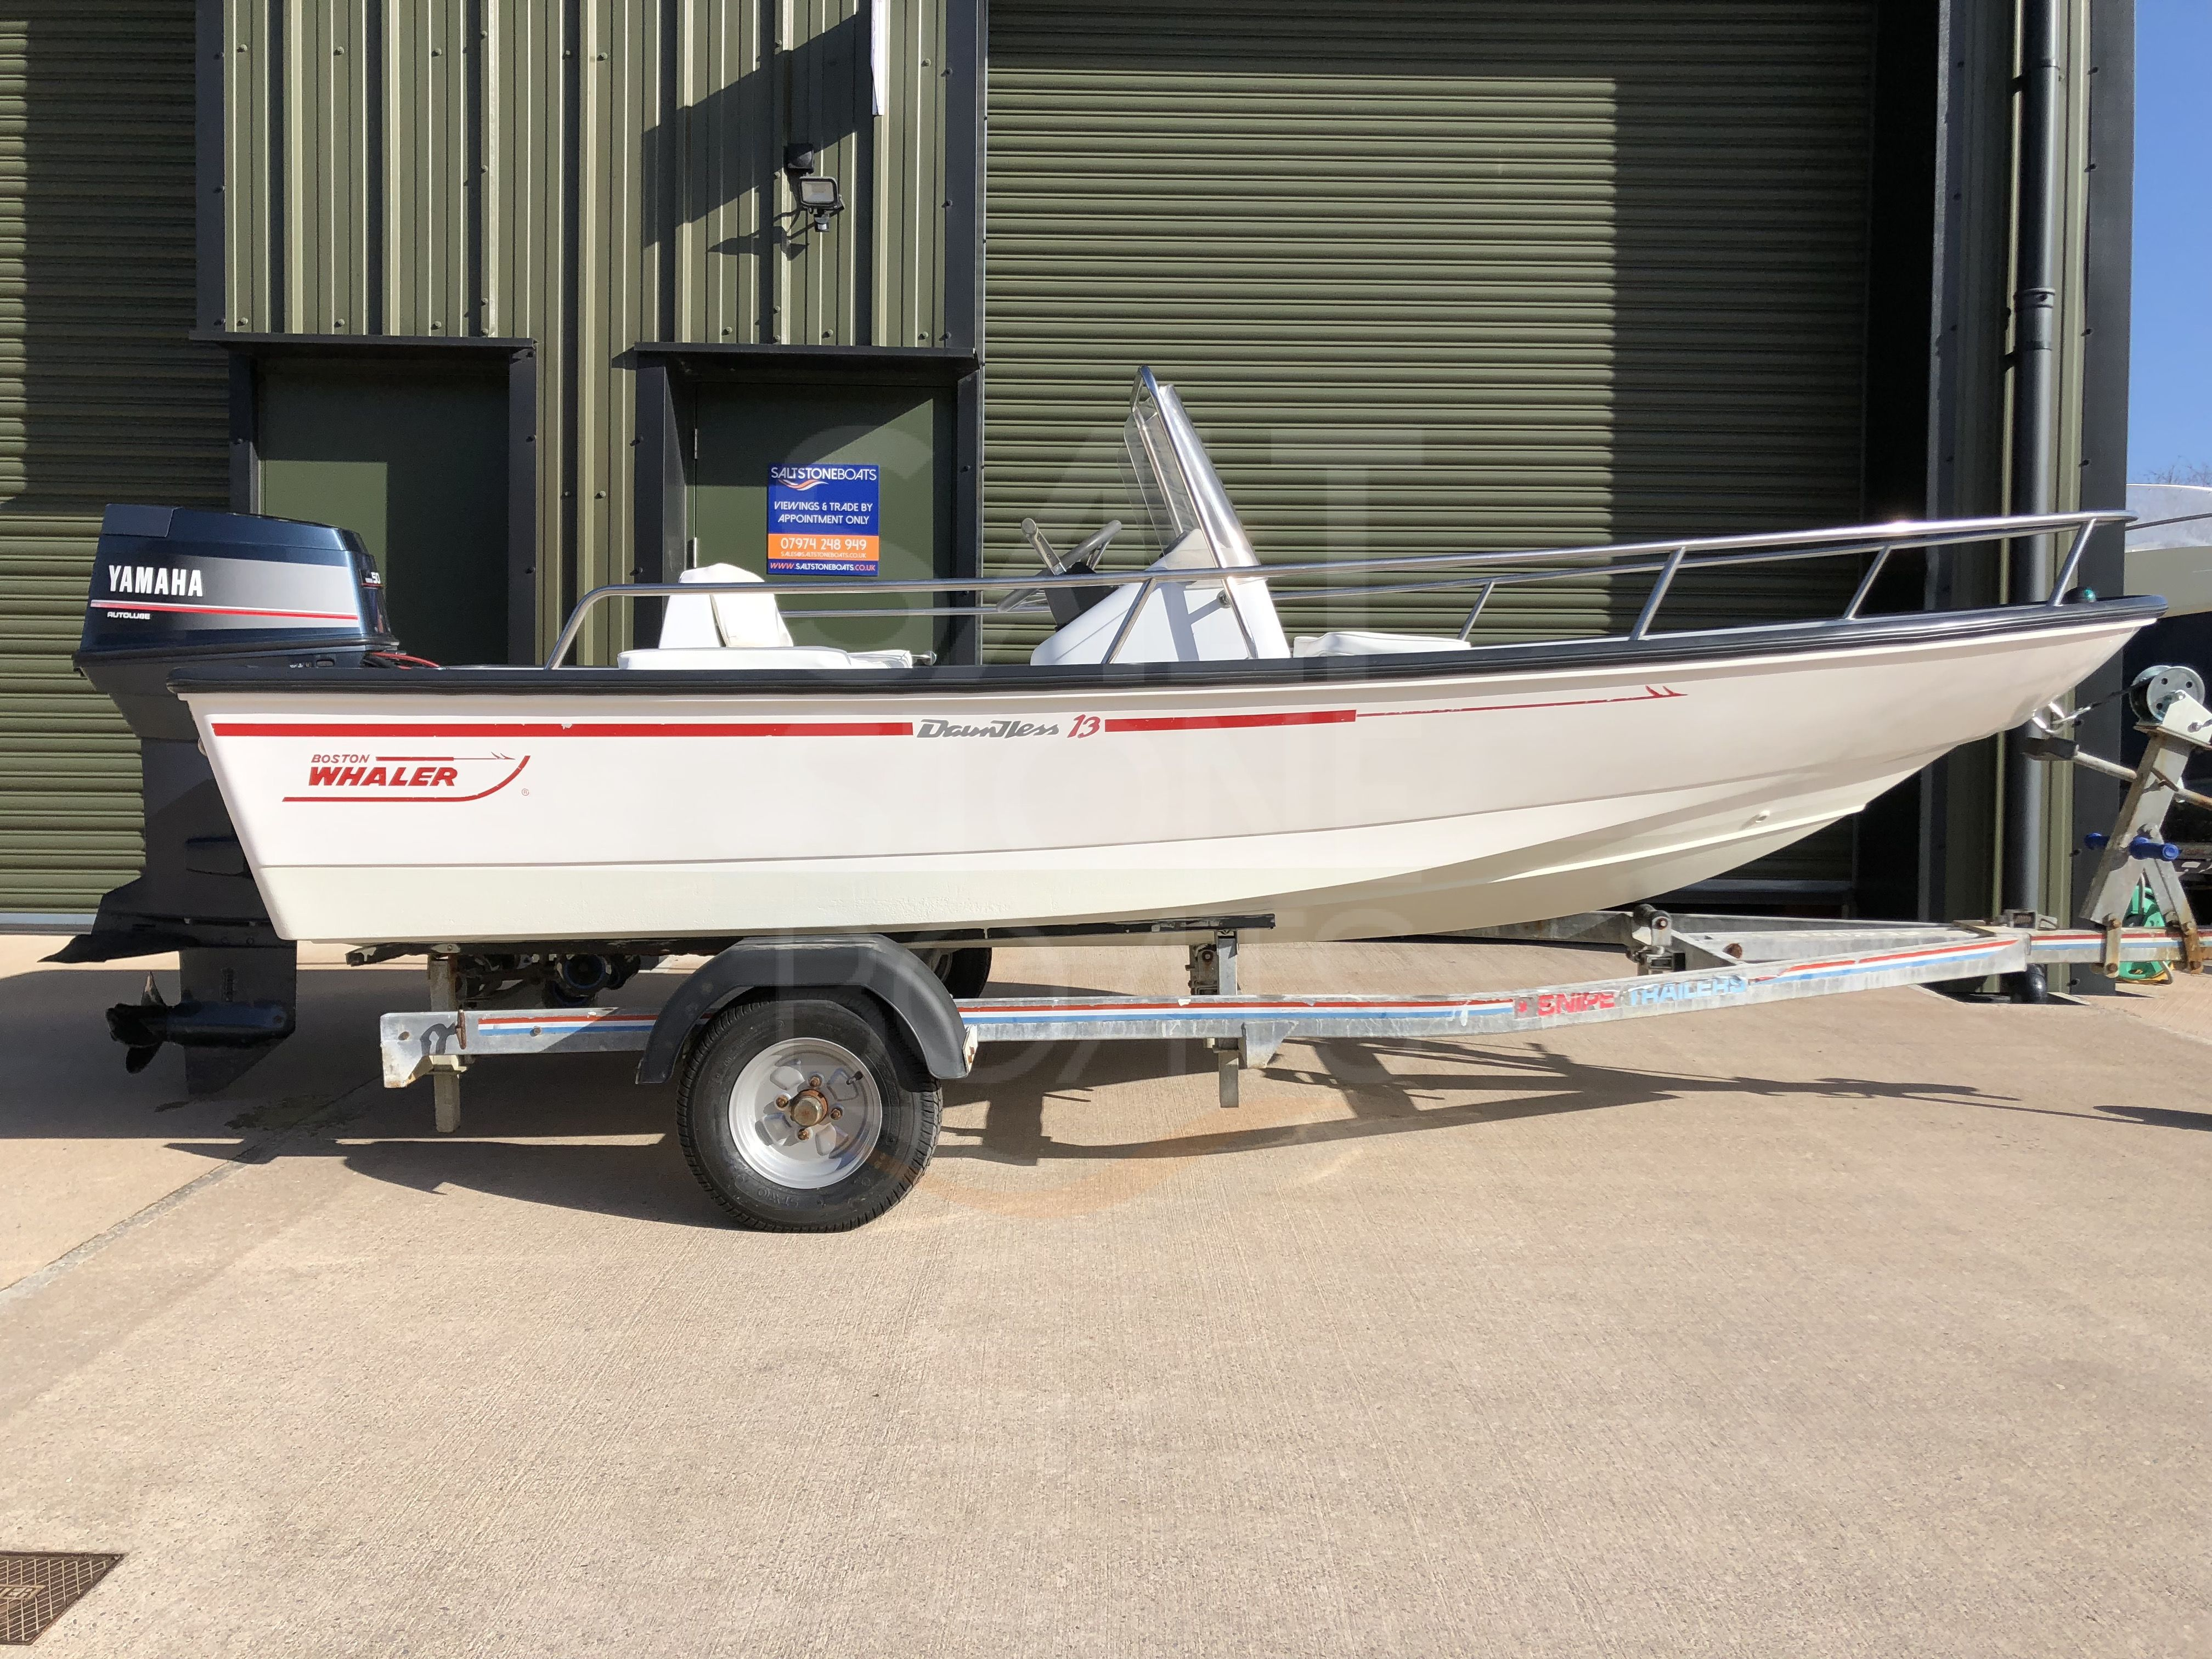 Boston Whaler 13' Dauntless with Yamaha 50 hp and Trailer - SOLD